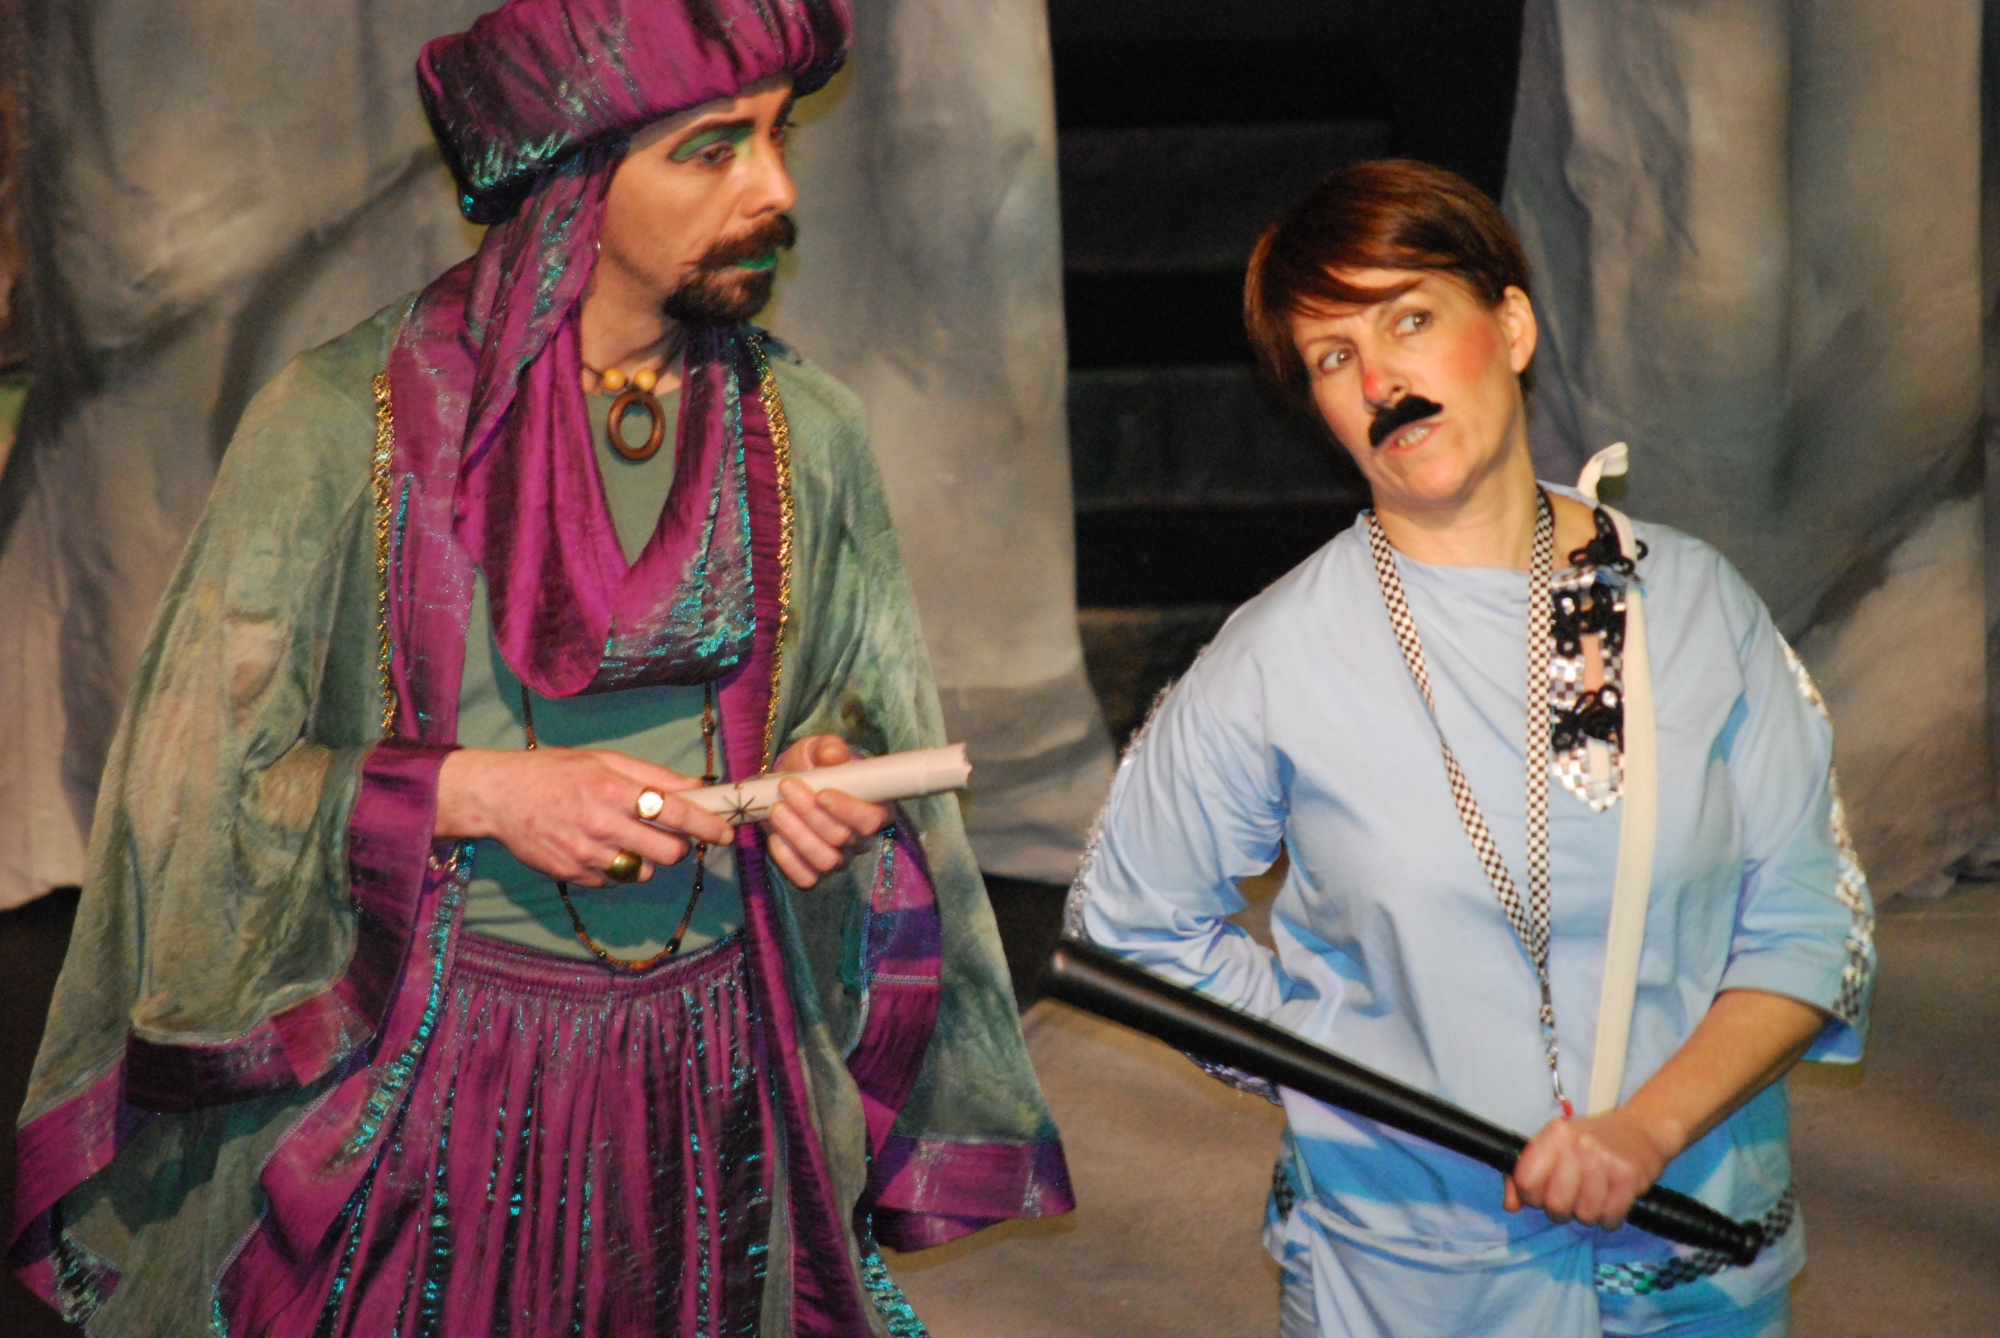 ALADDIN PERFORMED BY SALFORD ARTS THEATRE'S INHOUSE PROFESSIONAL COMPANY